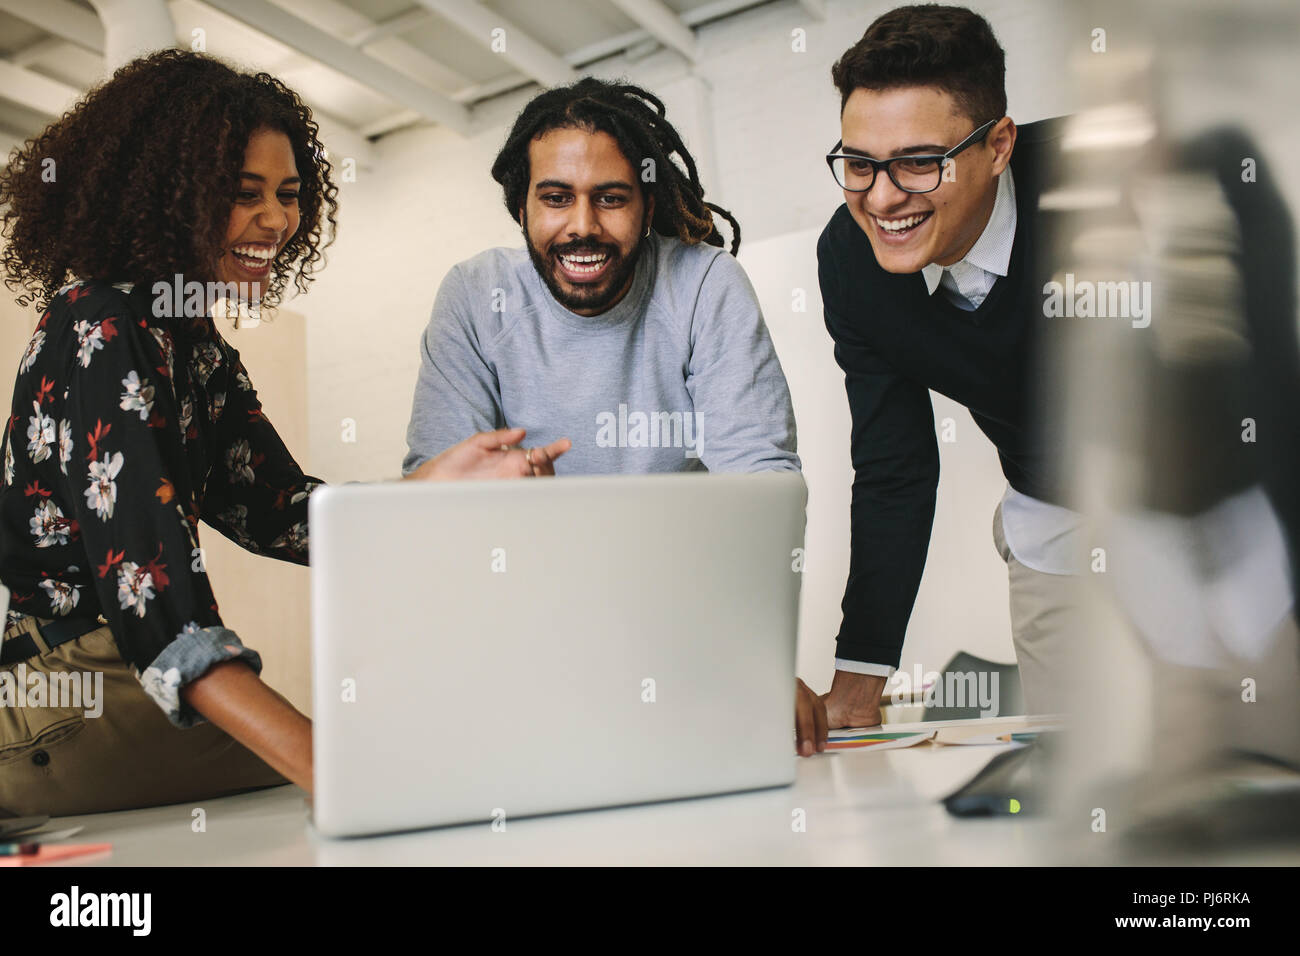 Business colleagues looking at a laptop computer and laughing. Office mates enjoying their work and having fun in office. - Stock Image